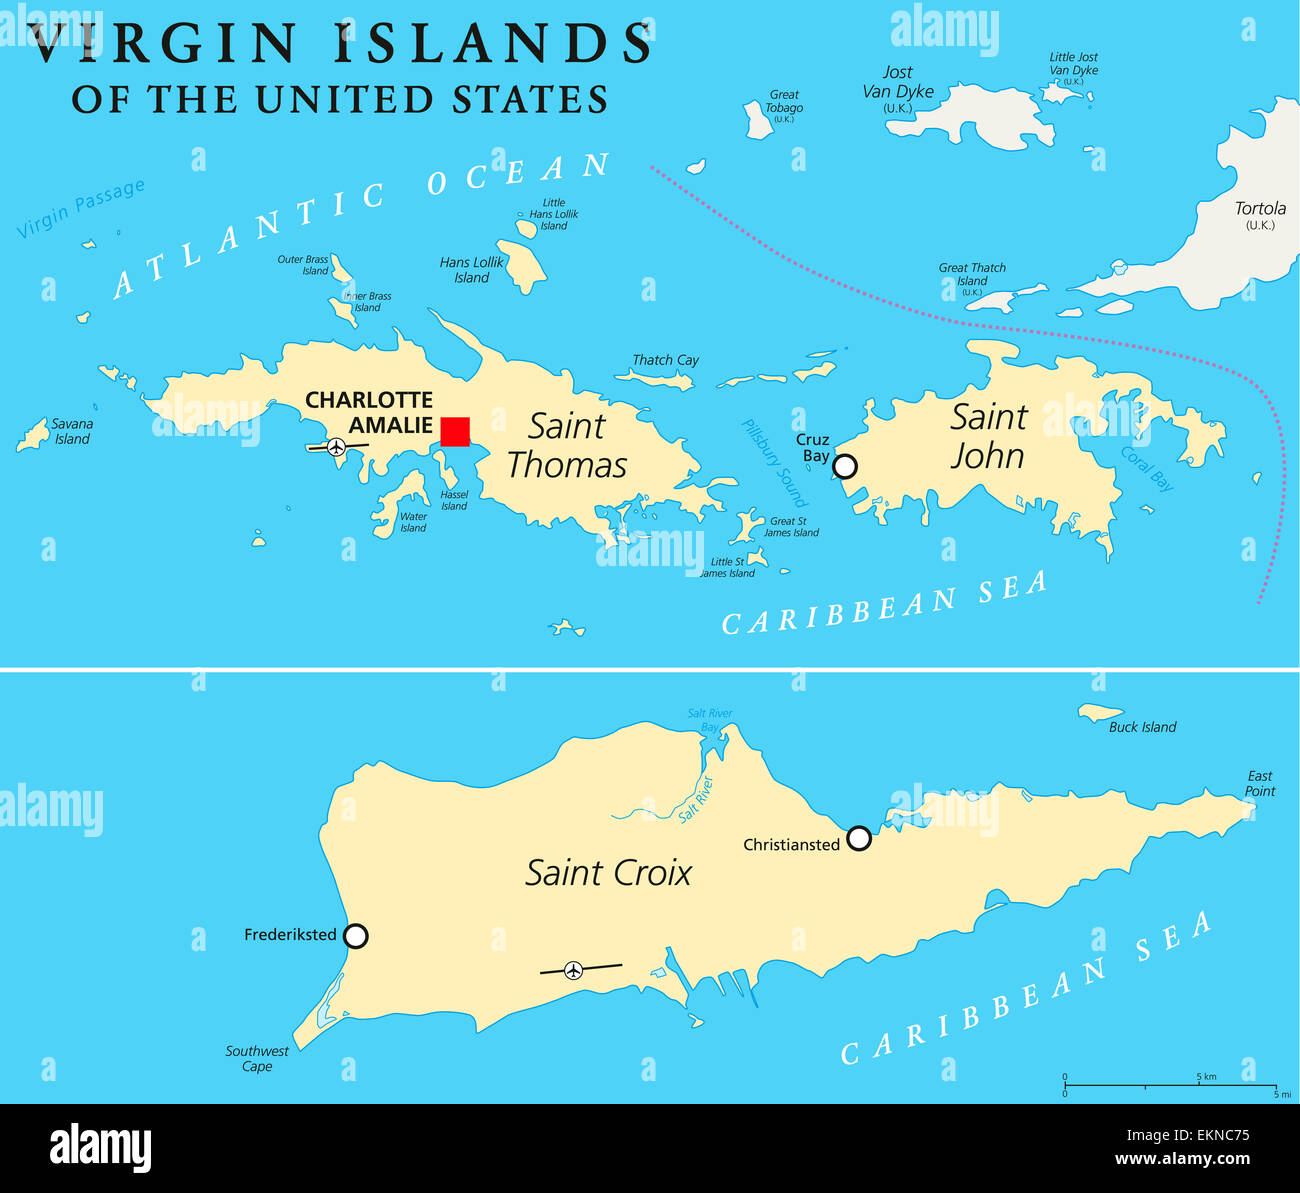 United States Virgin Islands Political Map Stock Photo: 80990537 - Alamy